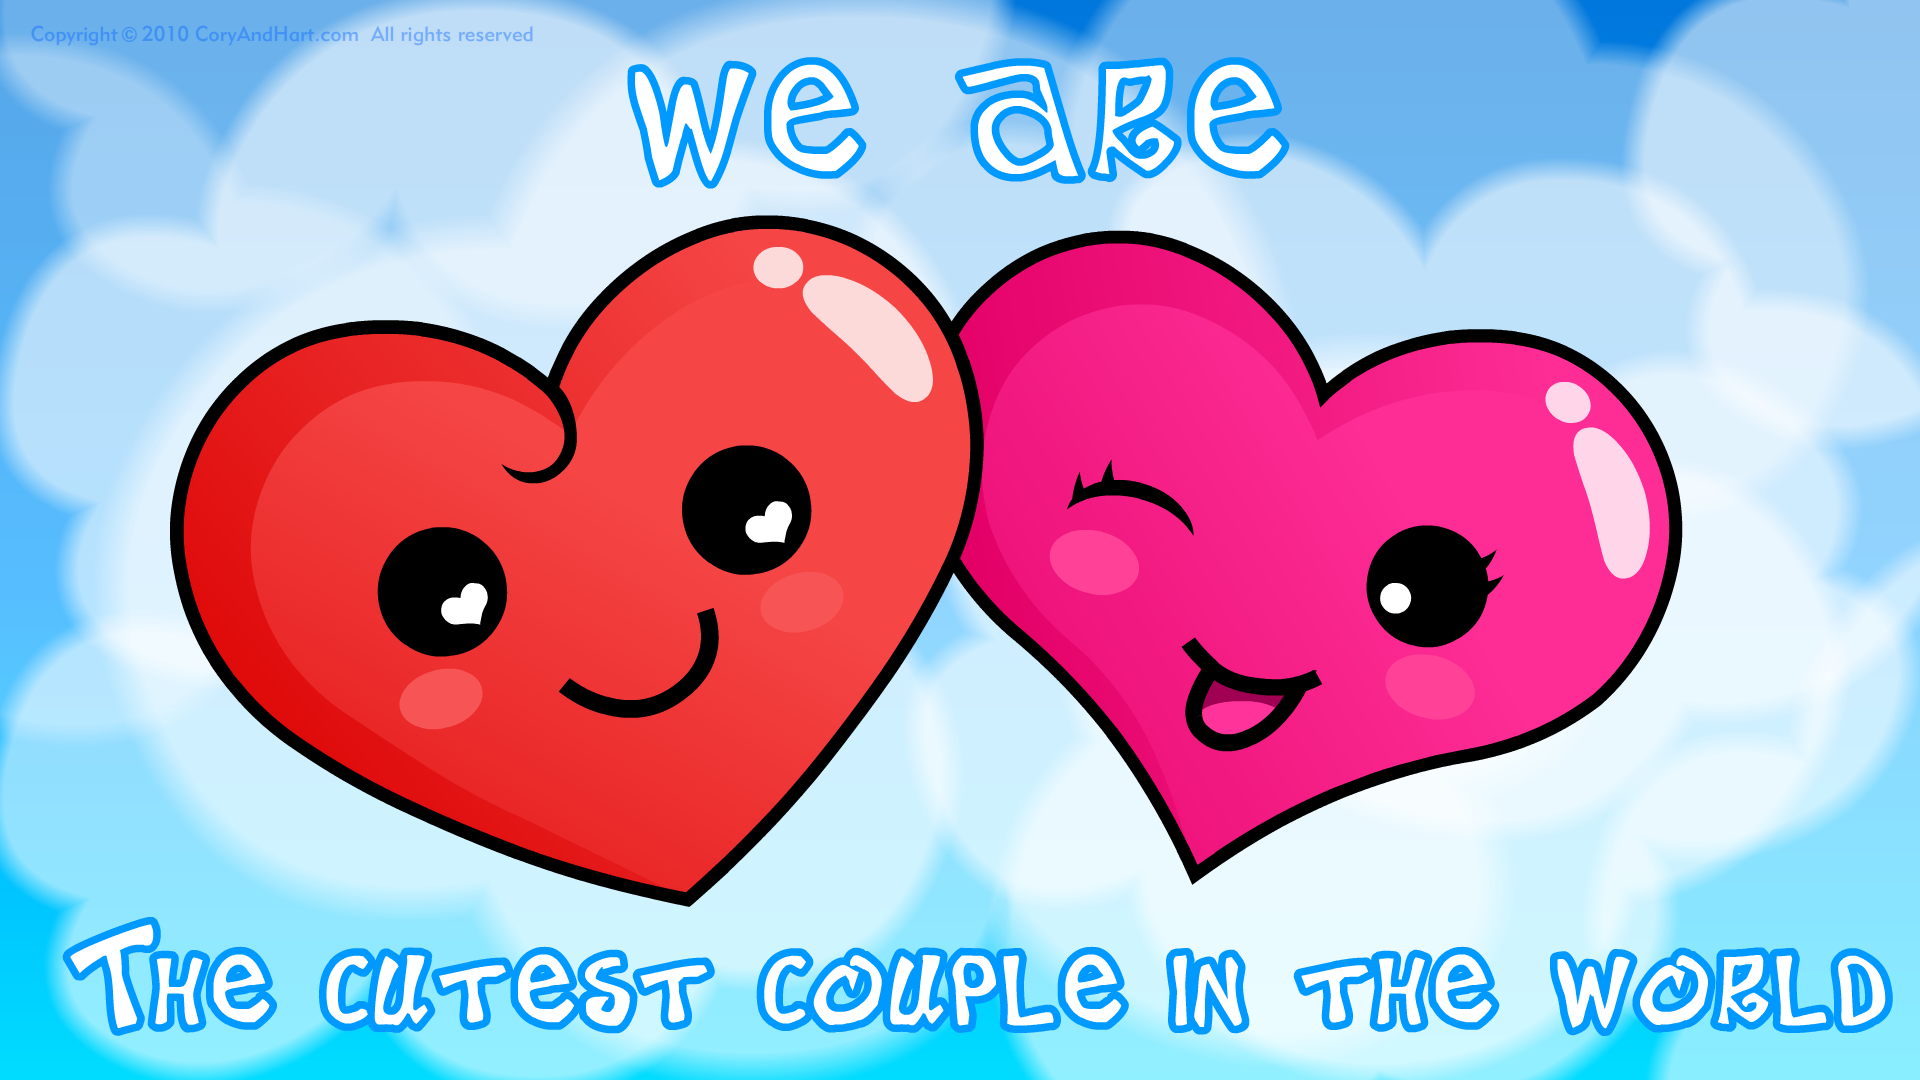 Cute Animated Love Images Images amp Pictures   Becuo 1920x1080